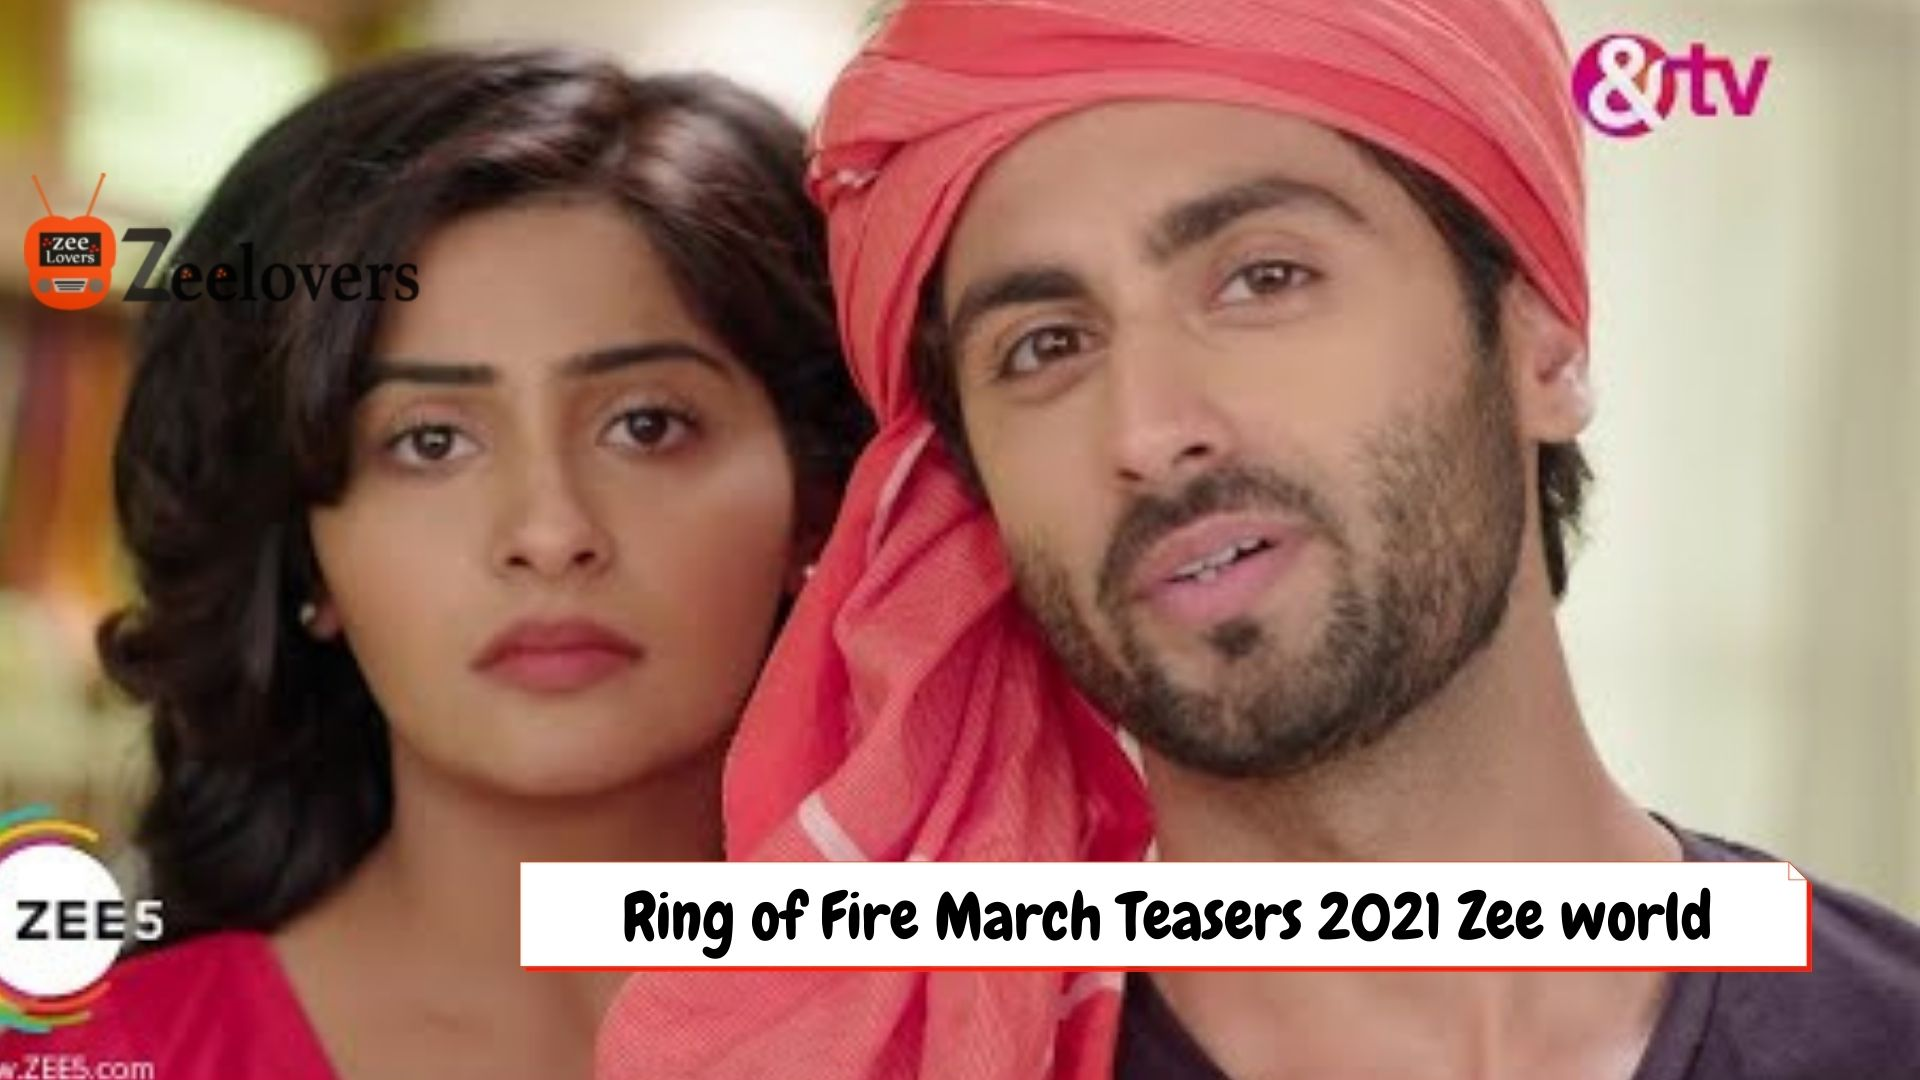 Ring of Fire March Teasers 2021 Zee world